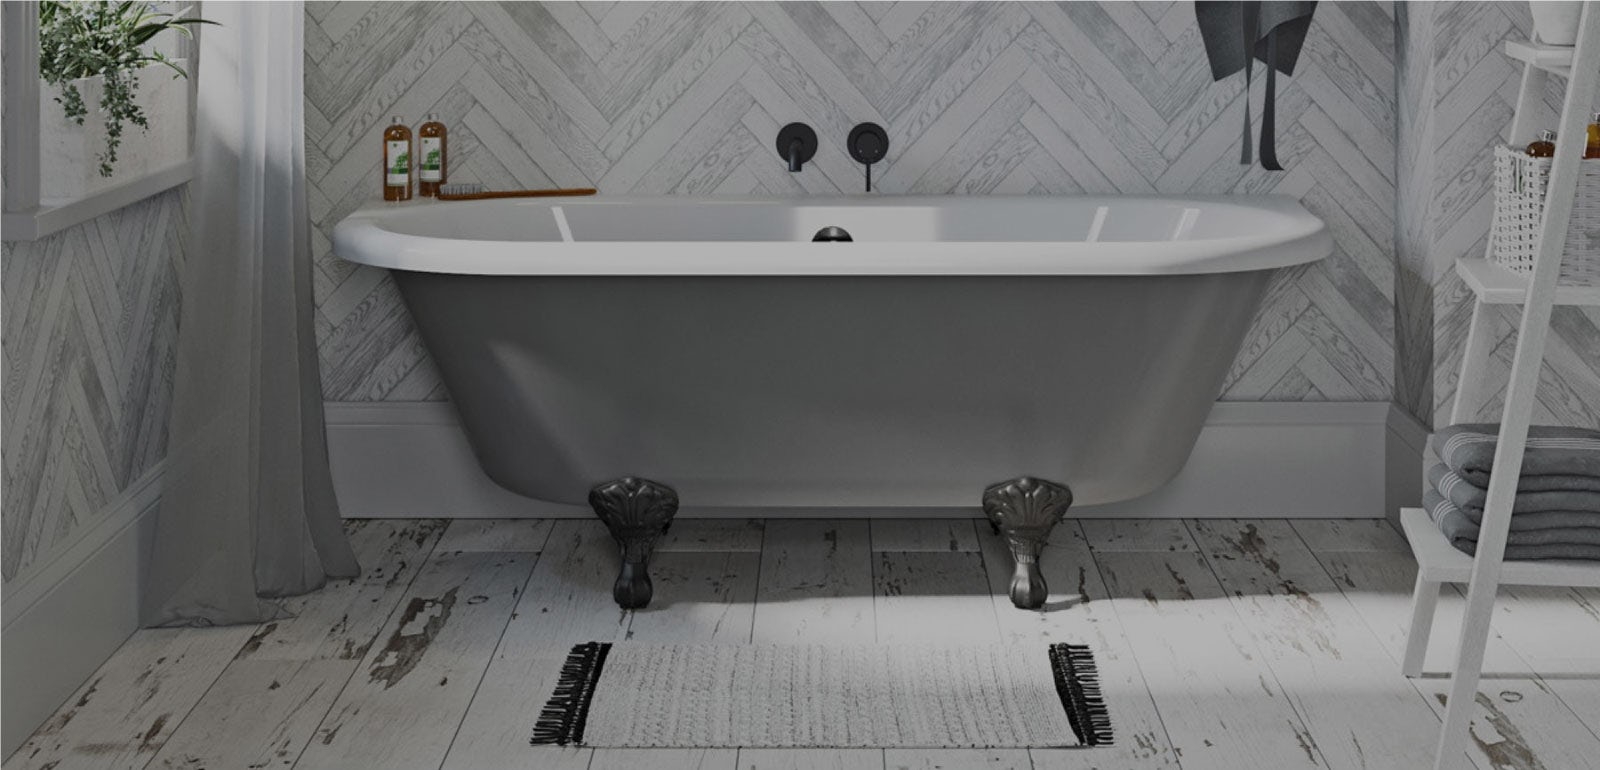 Newbury Traditional Back To Wall Roll Top Bath Suite At: Top Bathroom Picks For January 2019